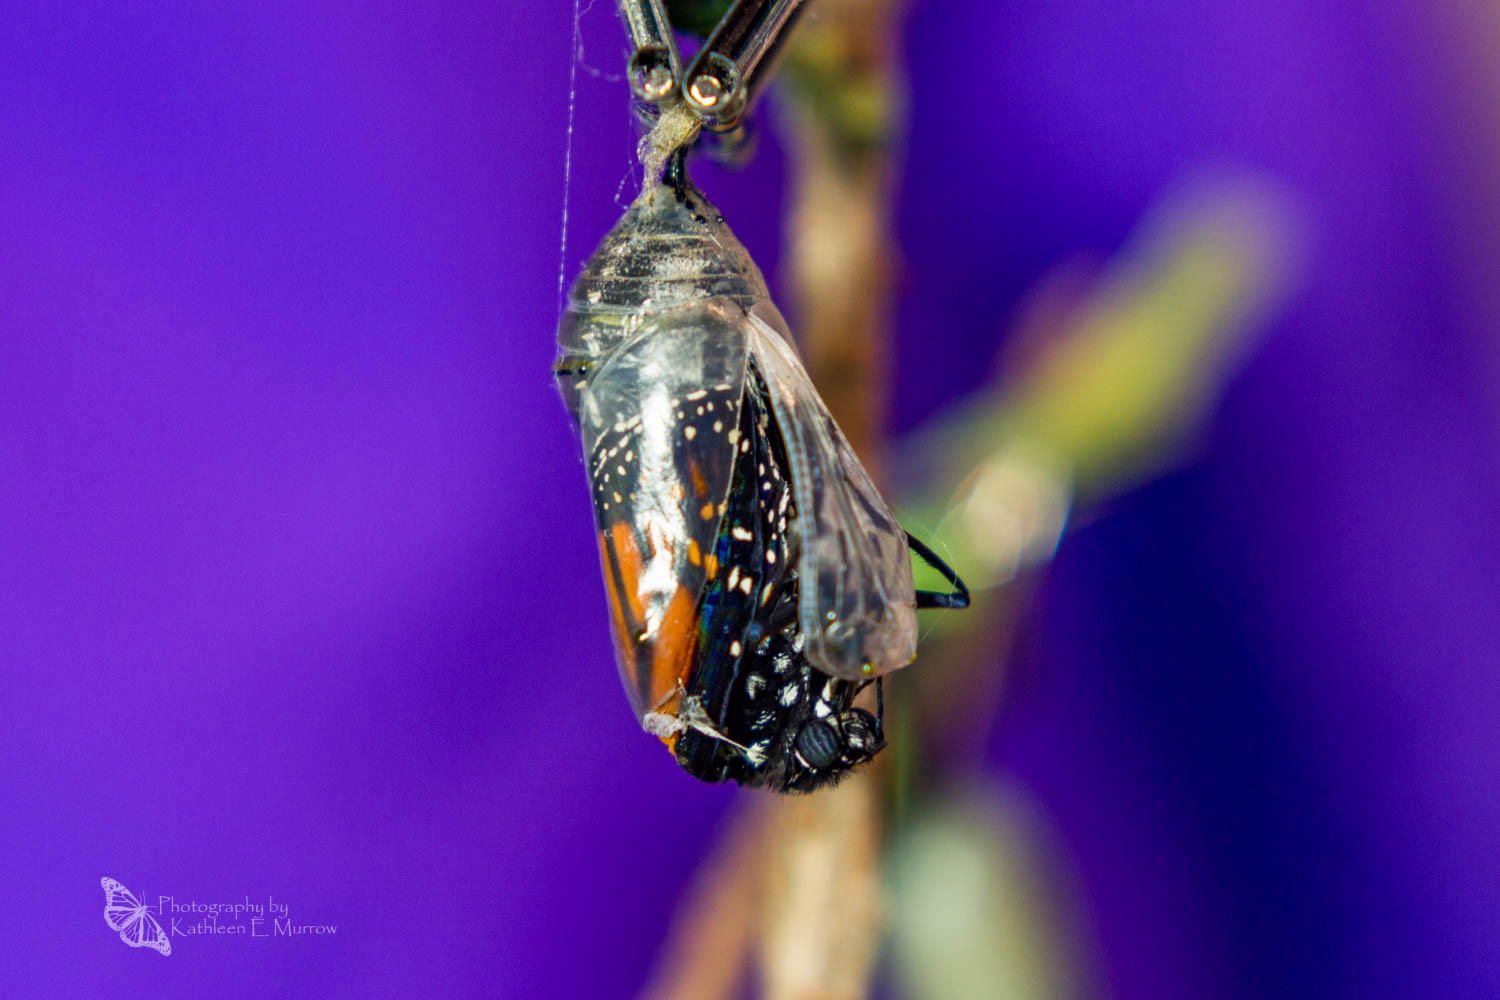 A monarch butterfly beginning to eclose (emerge from its chrysalis)